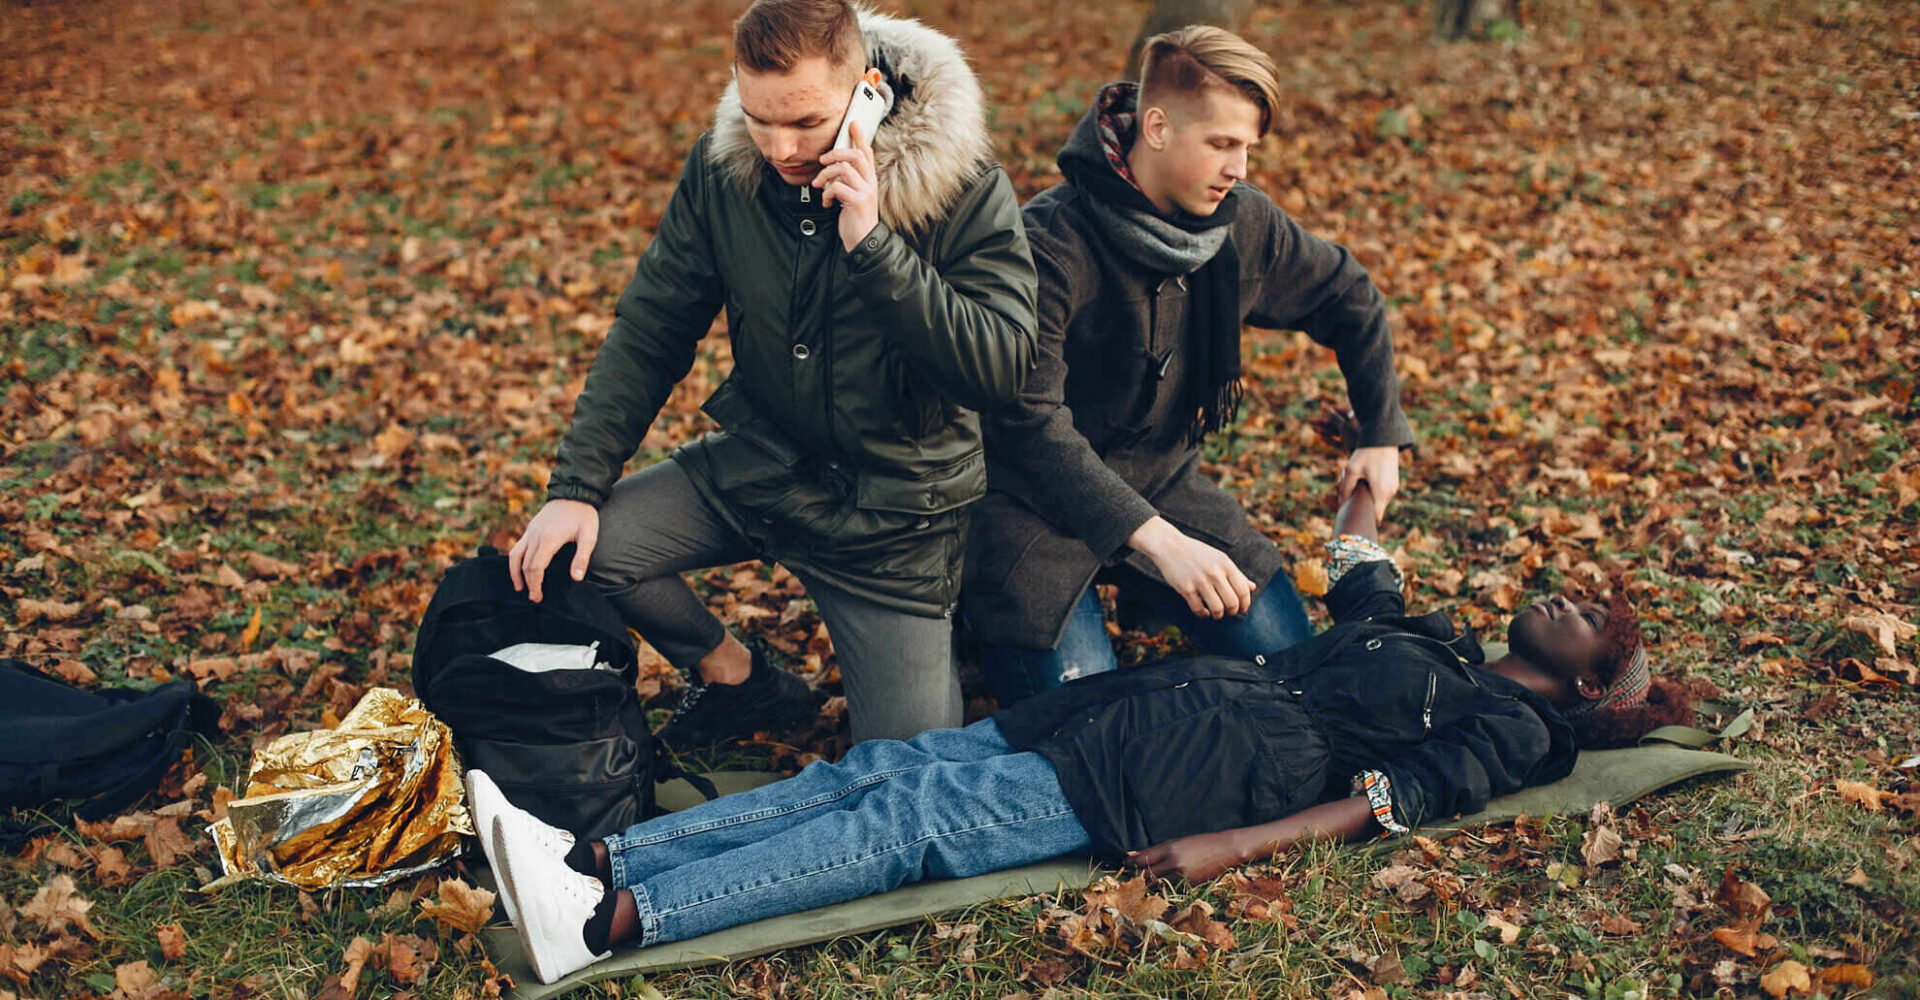 First aid for fainting